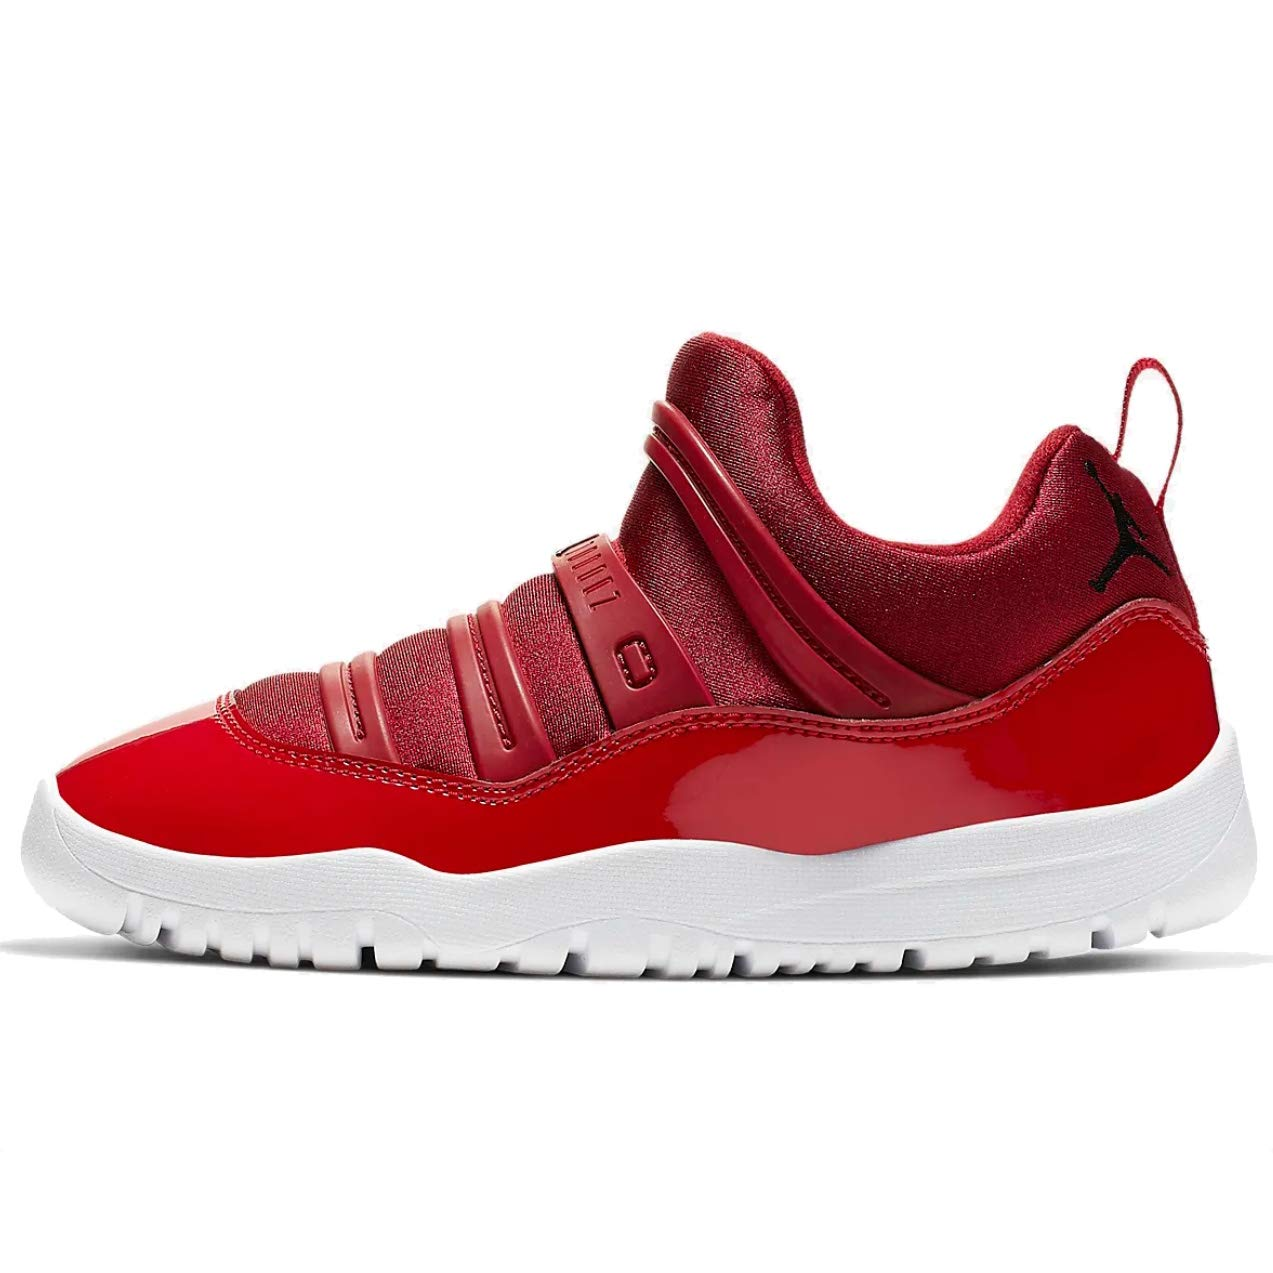 new styles d66f7 02477 Amazon.com | Jordan 11 Retro Little Flex Gym Red/Black-White ...